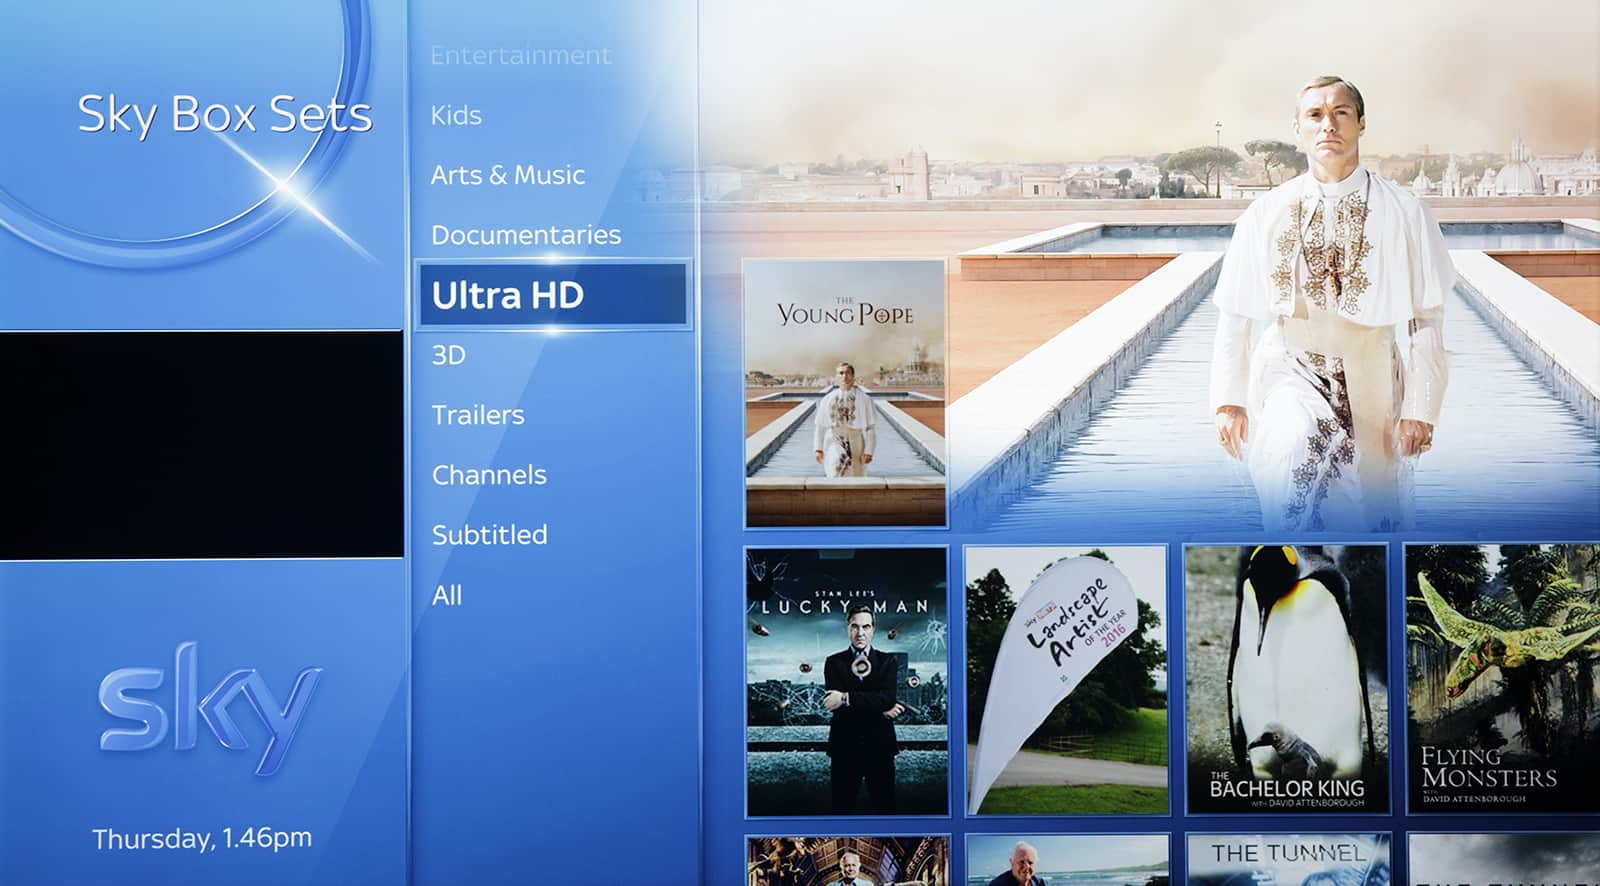 Sky box sets in UHD